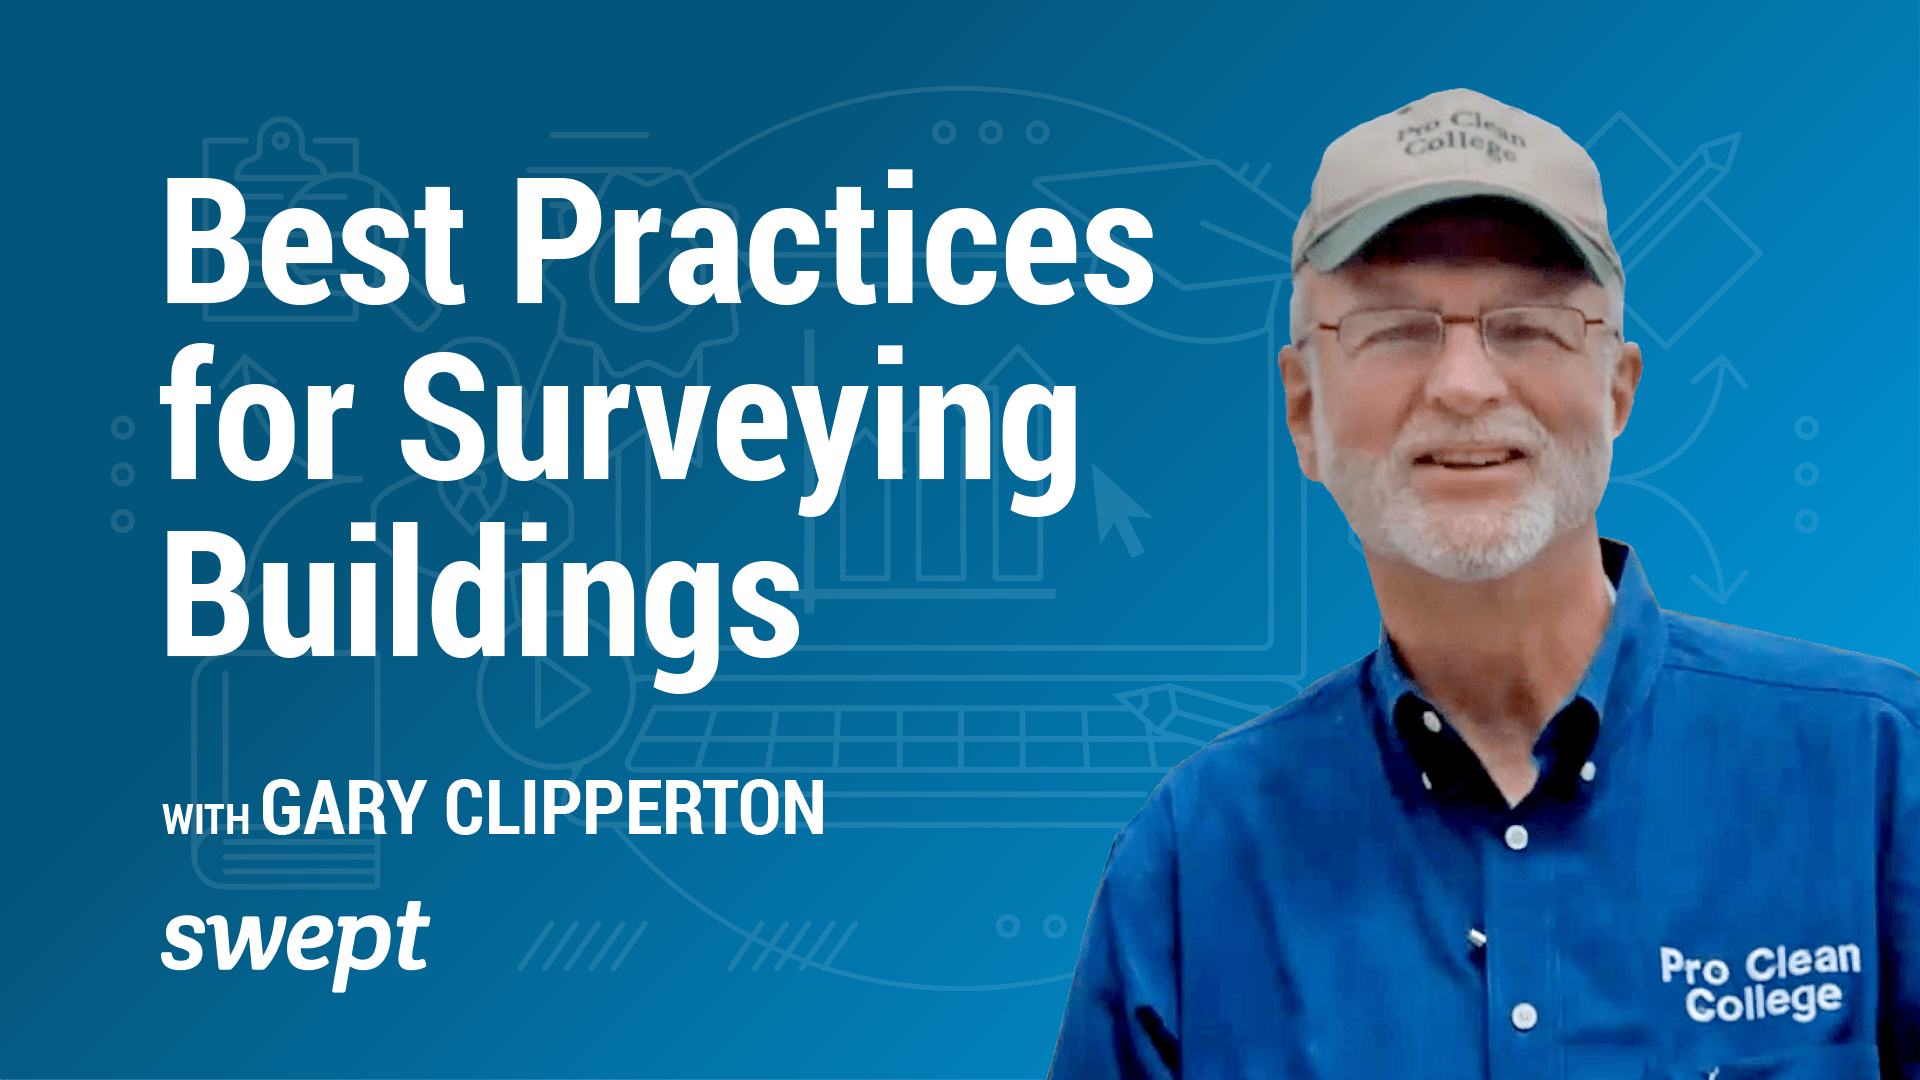 Watch Now: Best Practices for Surveying Buildings